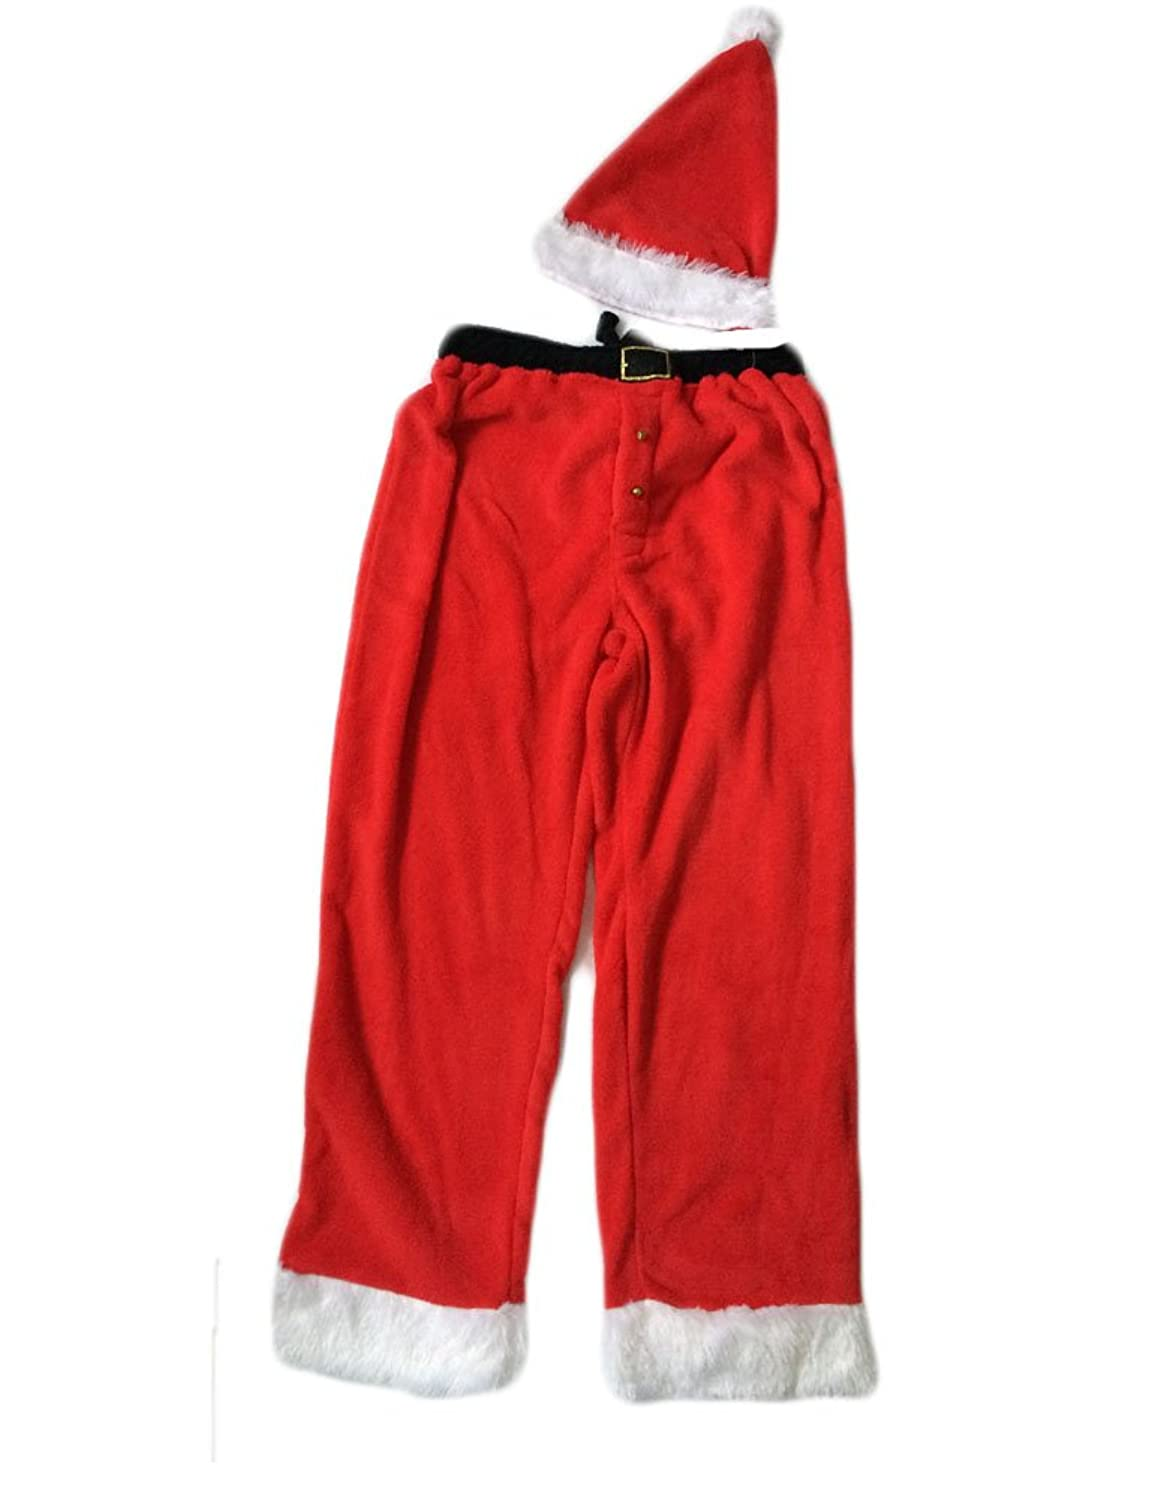 Joe Boxer Men\'s Christmas Fleece Pajama Pants & Santa Hat (Small) at ...